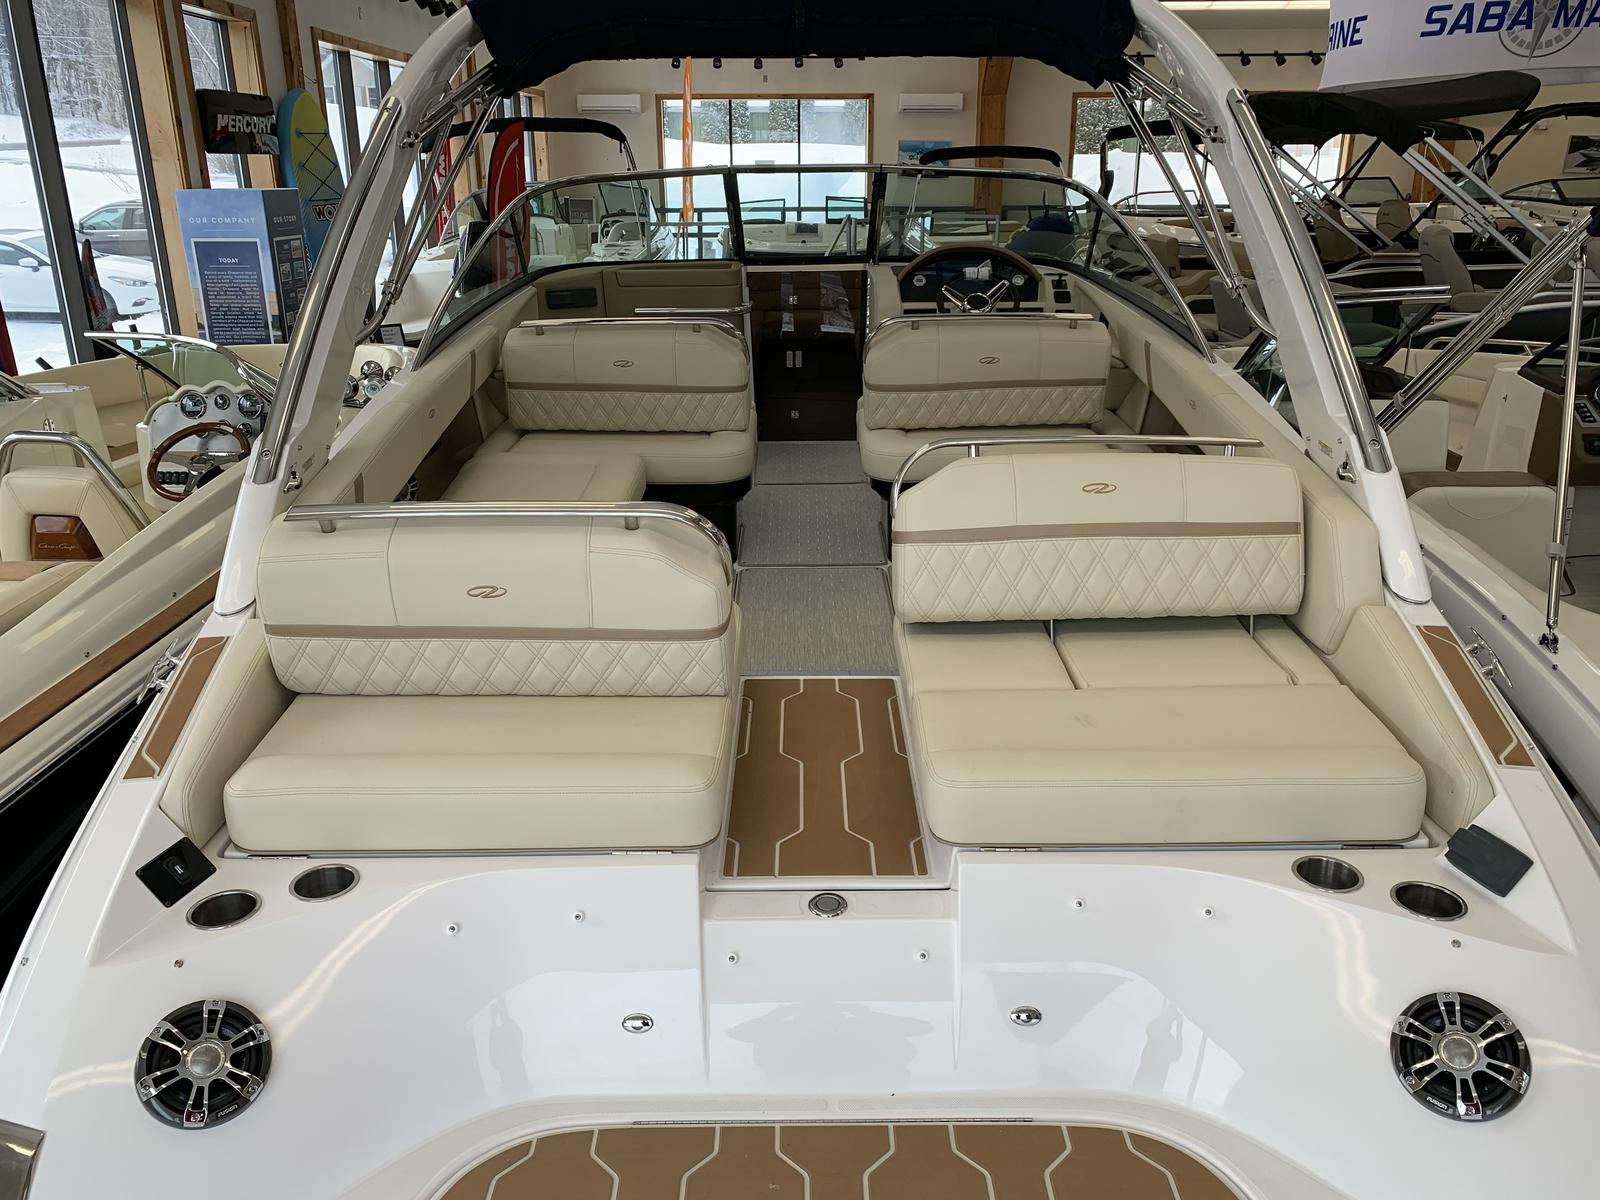 2019 Regal 2800 for sale in Colchester, VT  Saba Marine